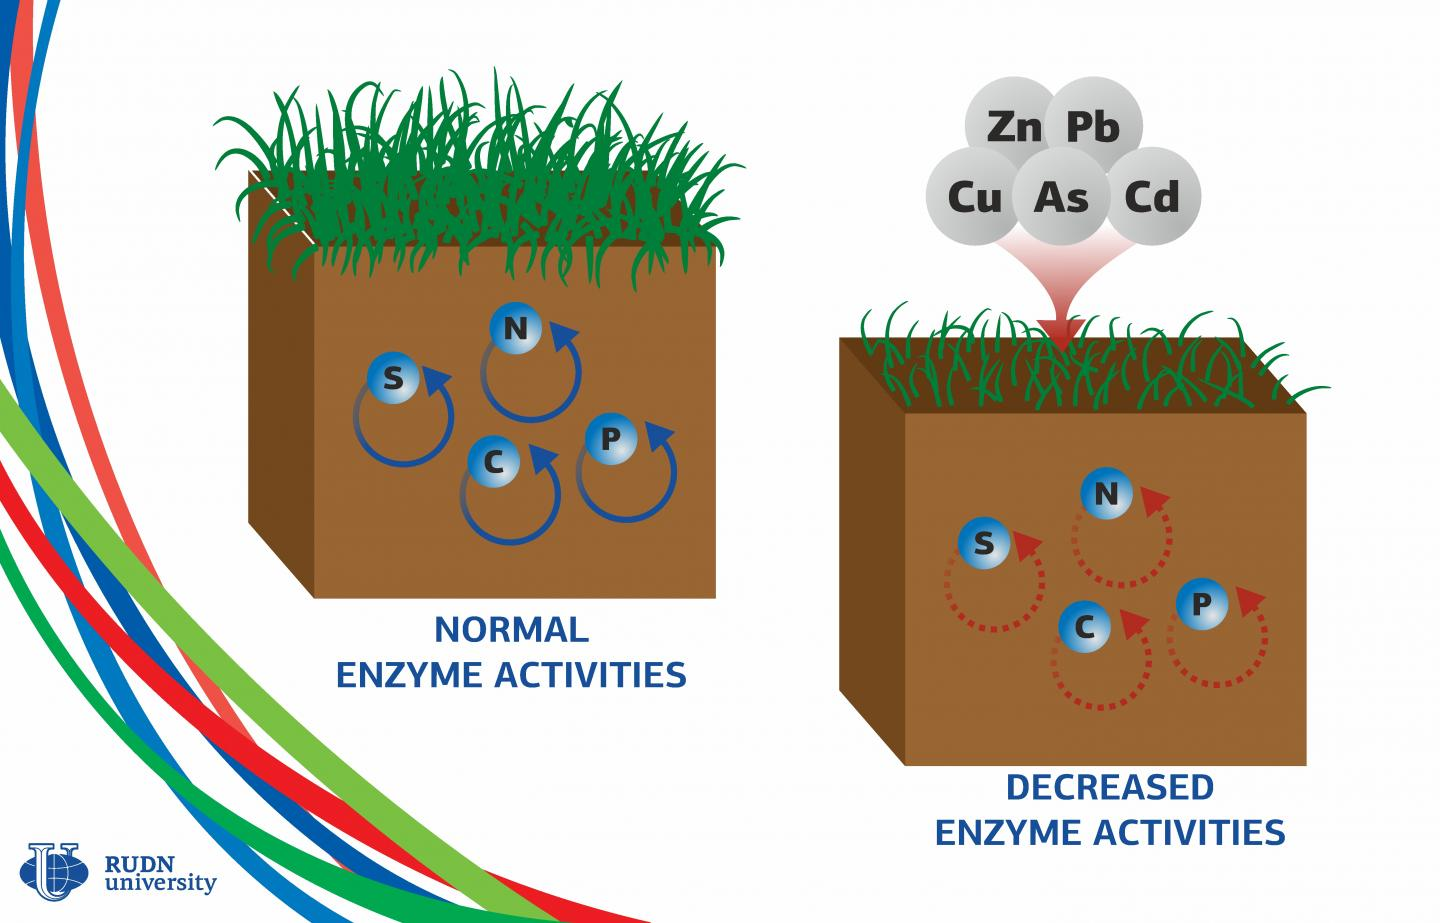 Heavy Metals Make Soil Enzymes 3 Times Weaker, Says a Soil Scientist from RUDN University